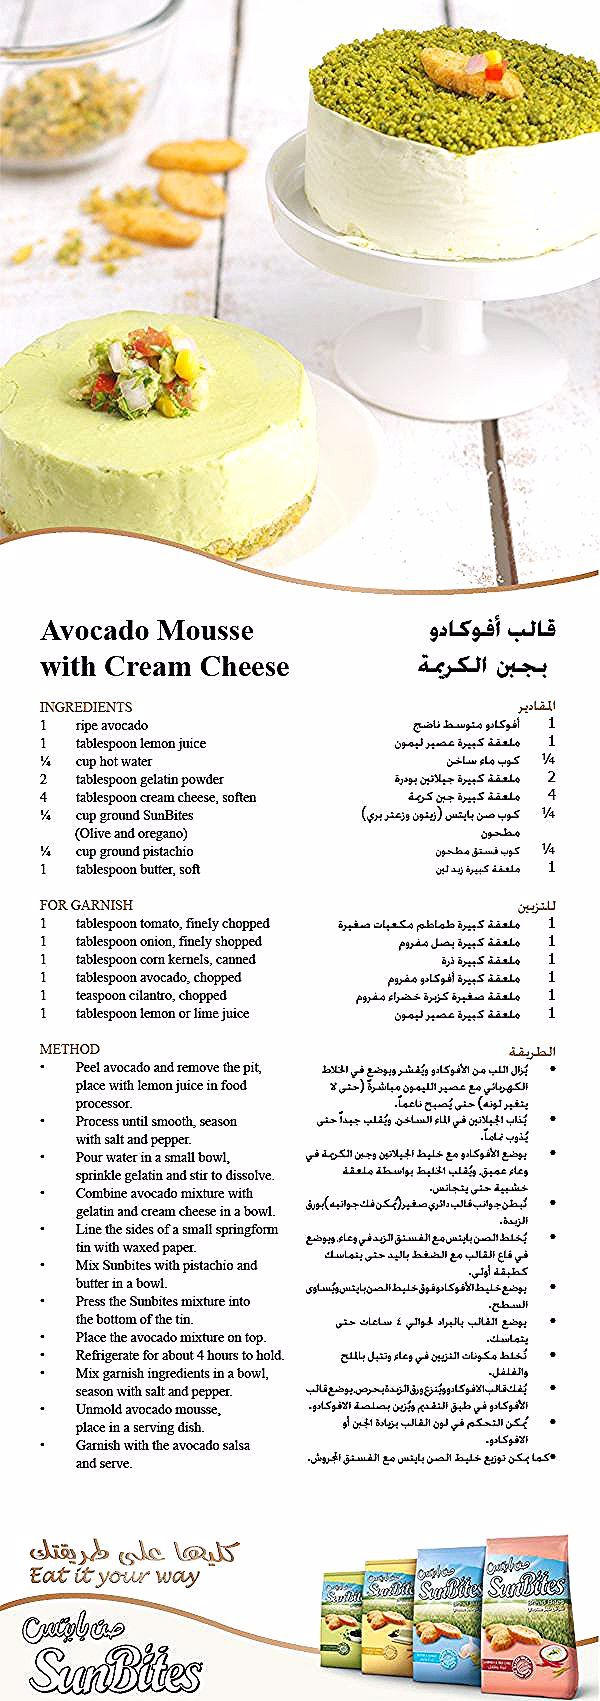 Avocado Mousse With Cream Cheese Recipe Created And Prepared By Chef Oussama قالب أفوكادو بجبن الكريمة من ابتكار و تحضير الشيف أس Recipes Food Avocado Recipes